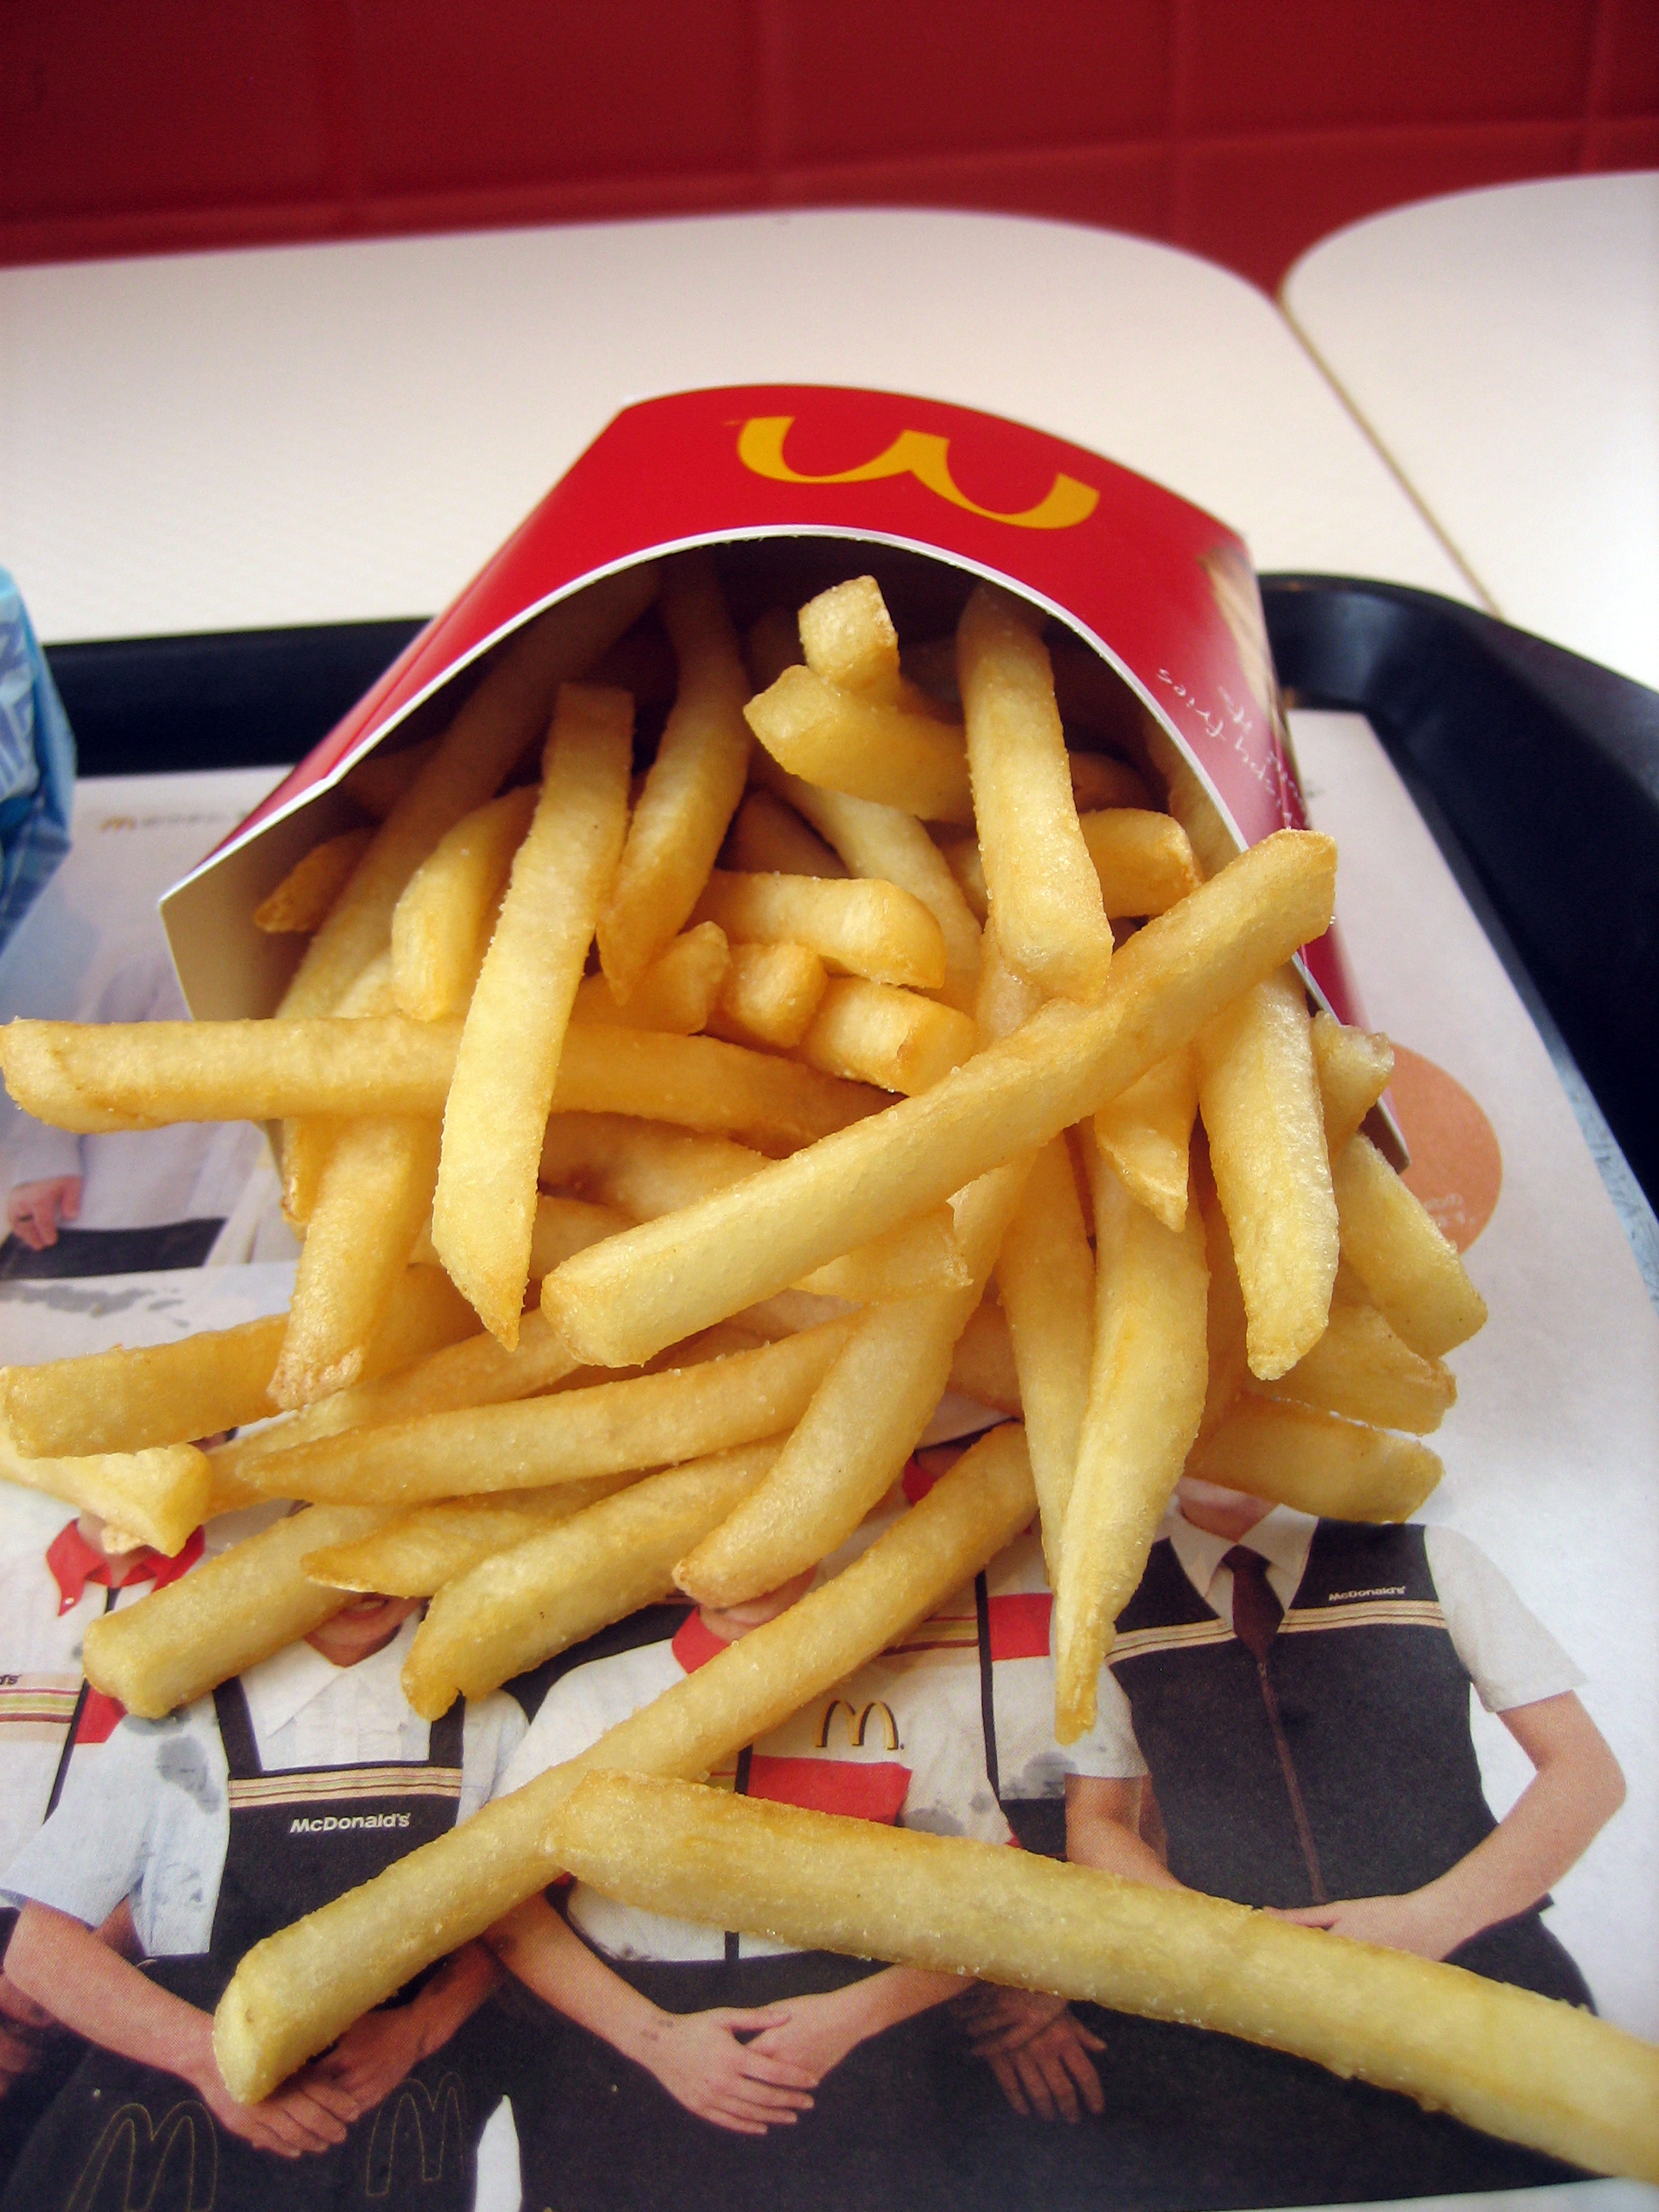 How many french fries does McDonald's sell?